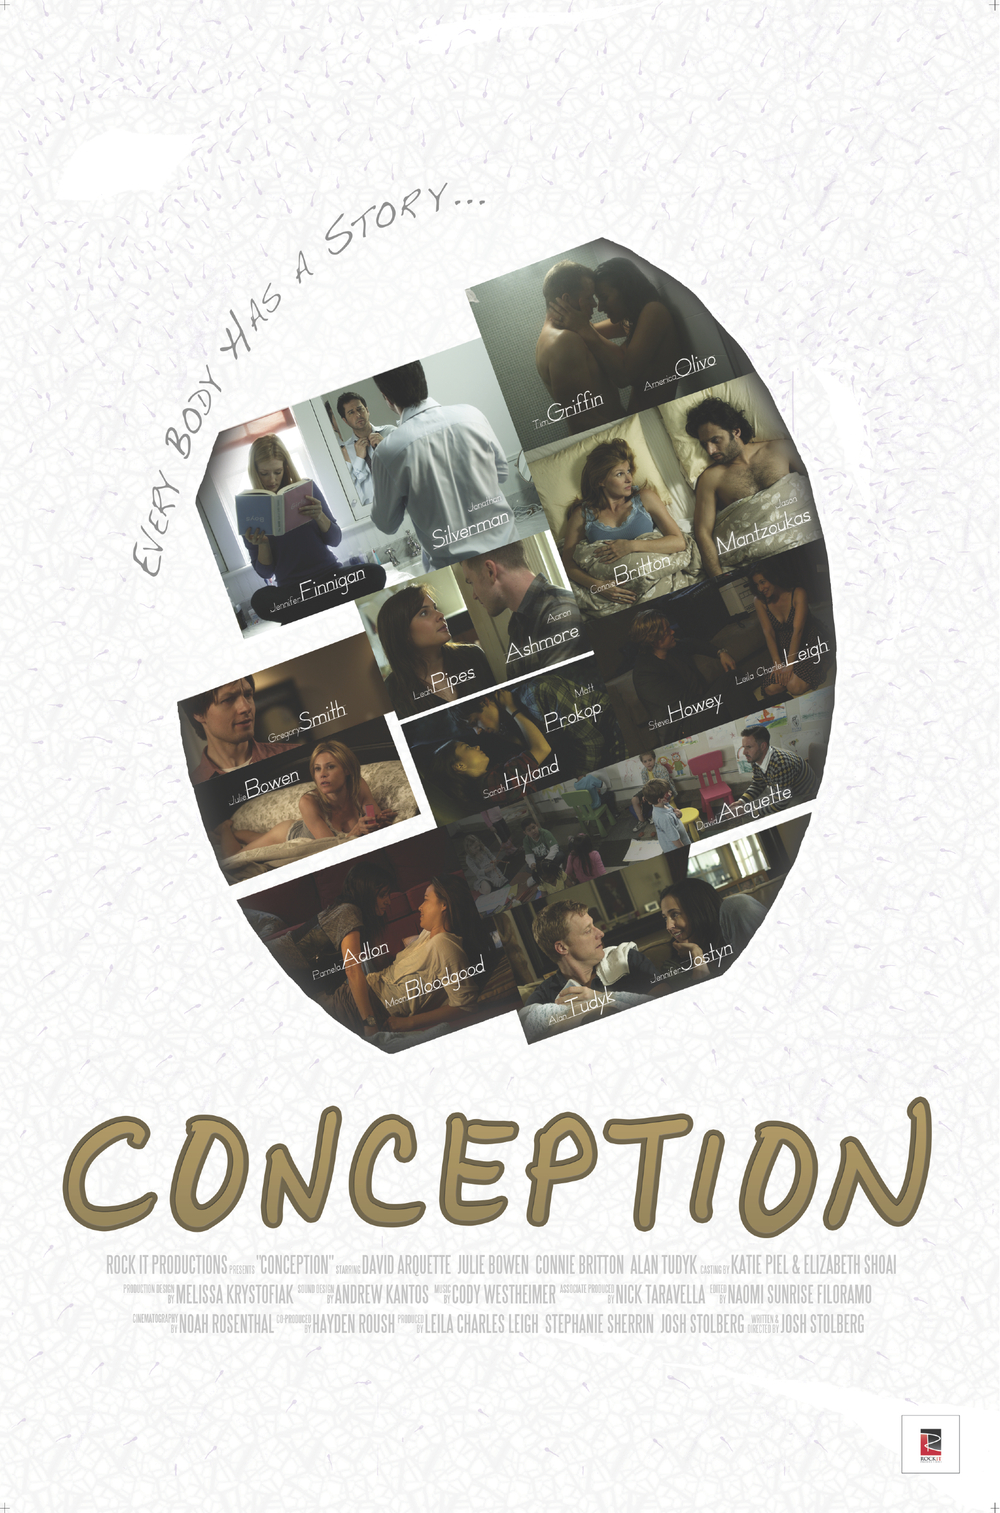 conceptionPoster.jpeg